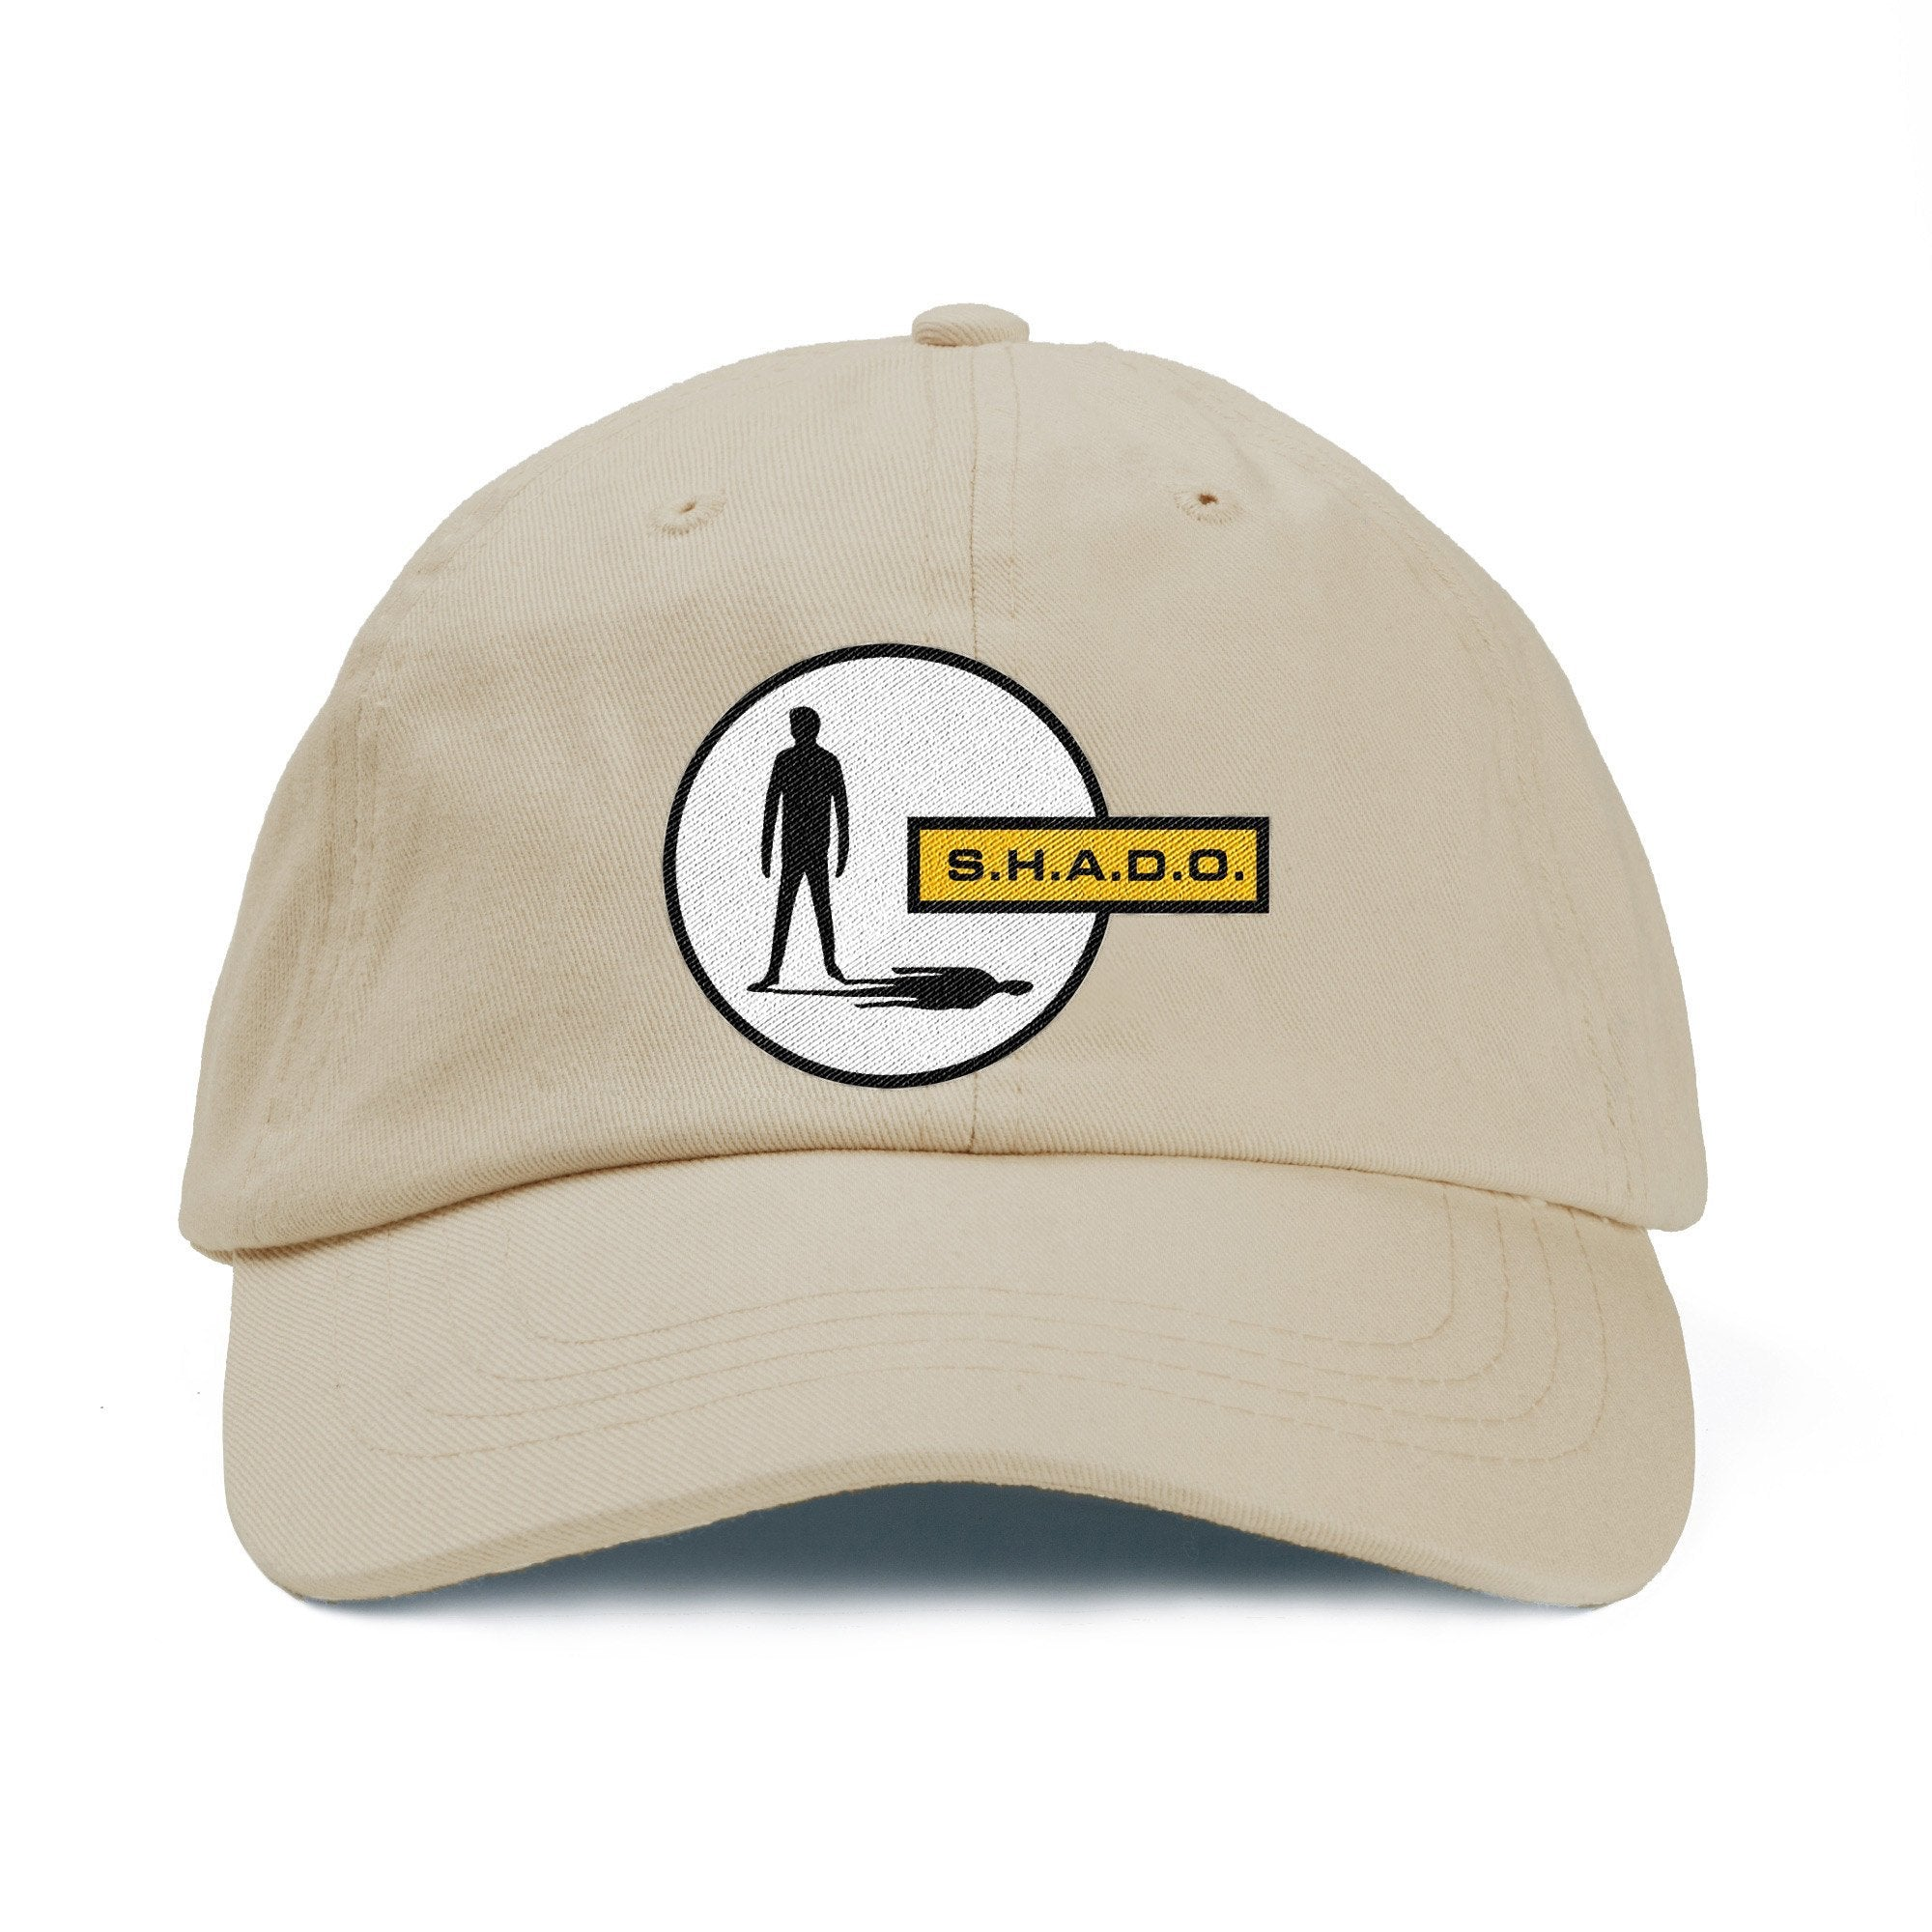 UFO/SHADO Baseball Cap [Official & Exclusive] - The Gerry Anderson Store